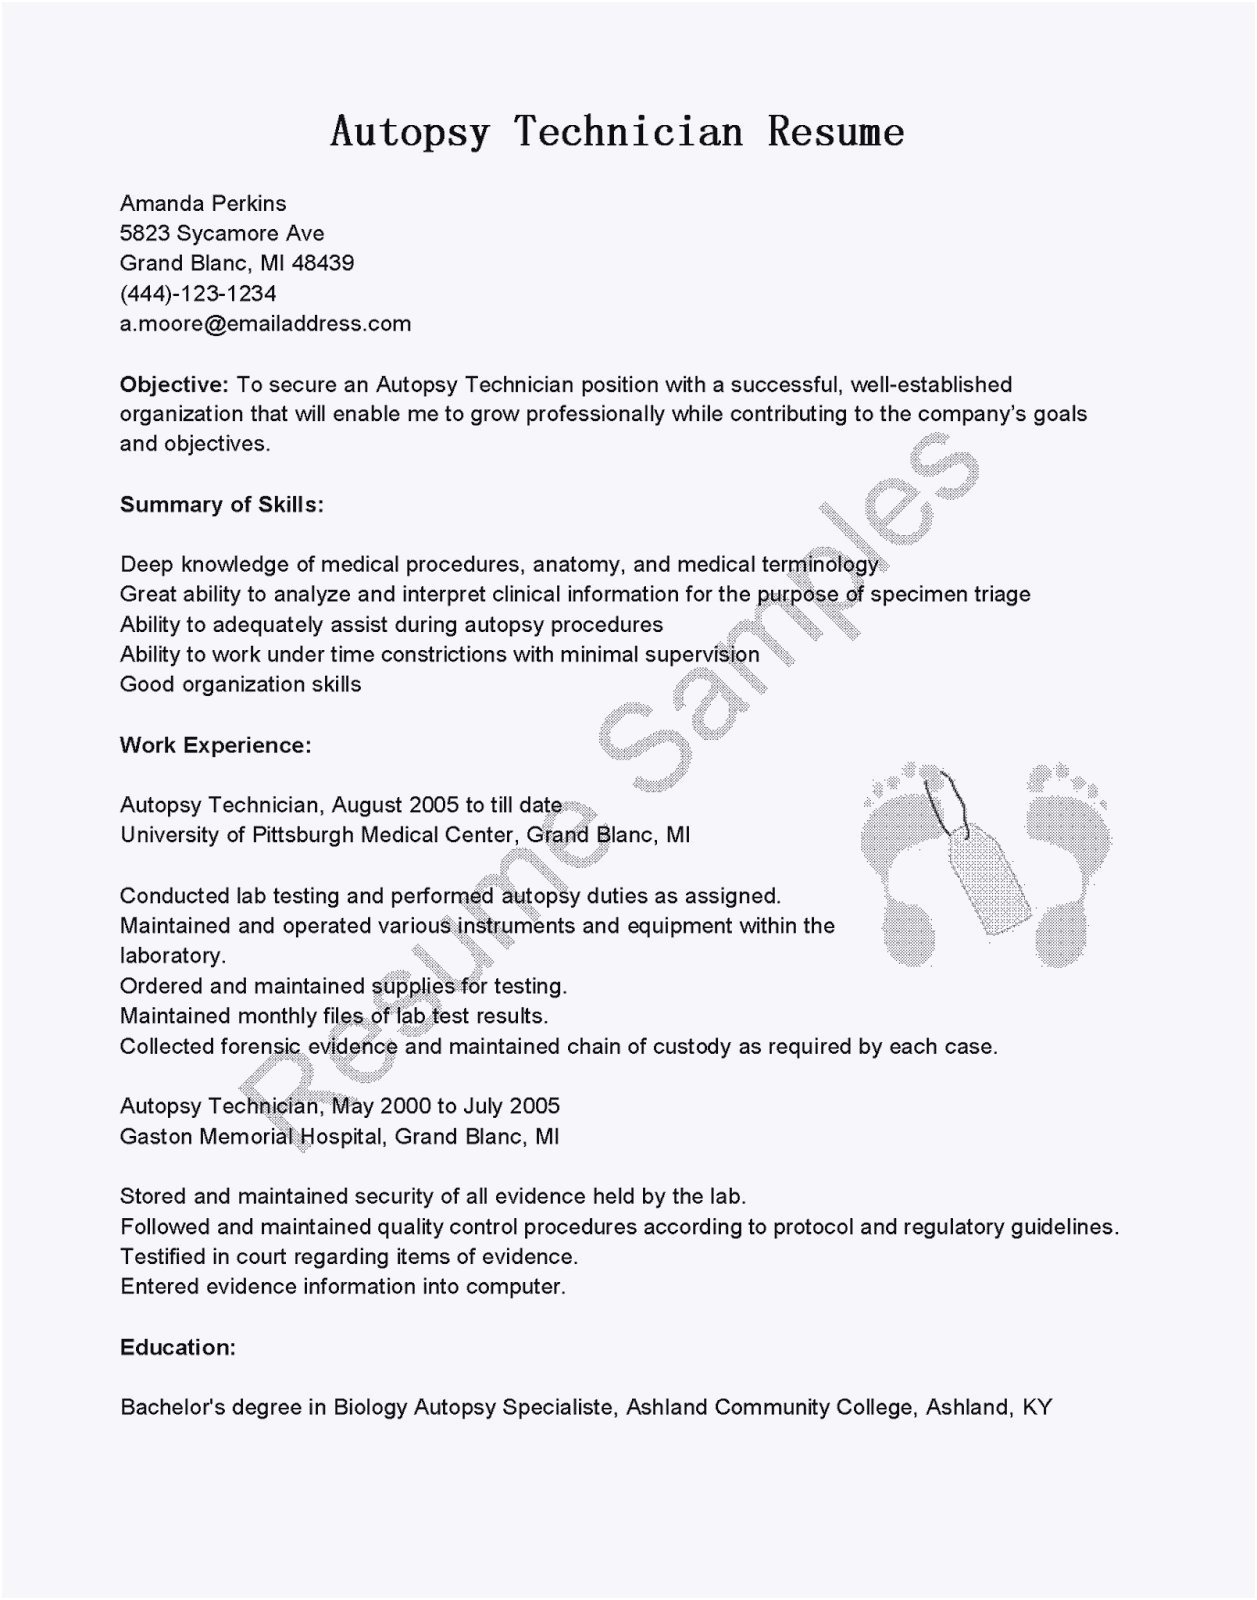 Desktop Support Resume Template - Schön Lebenslauf It